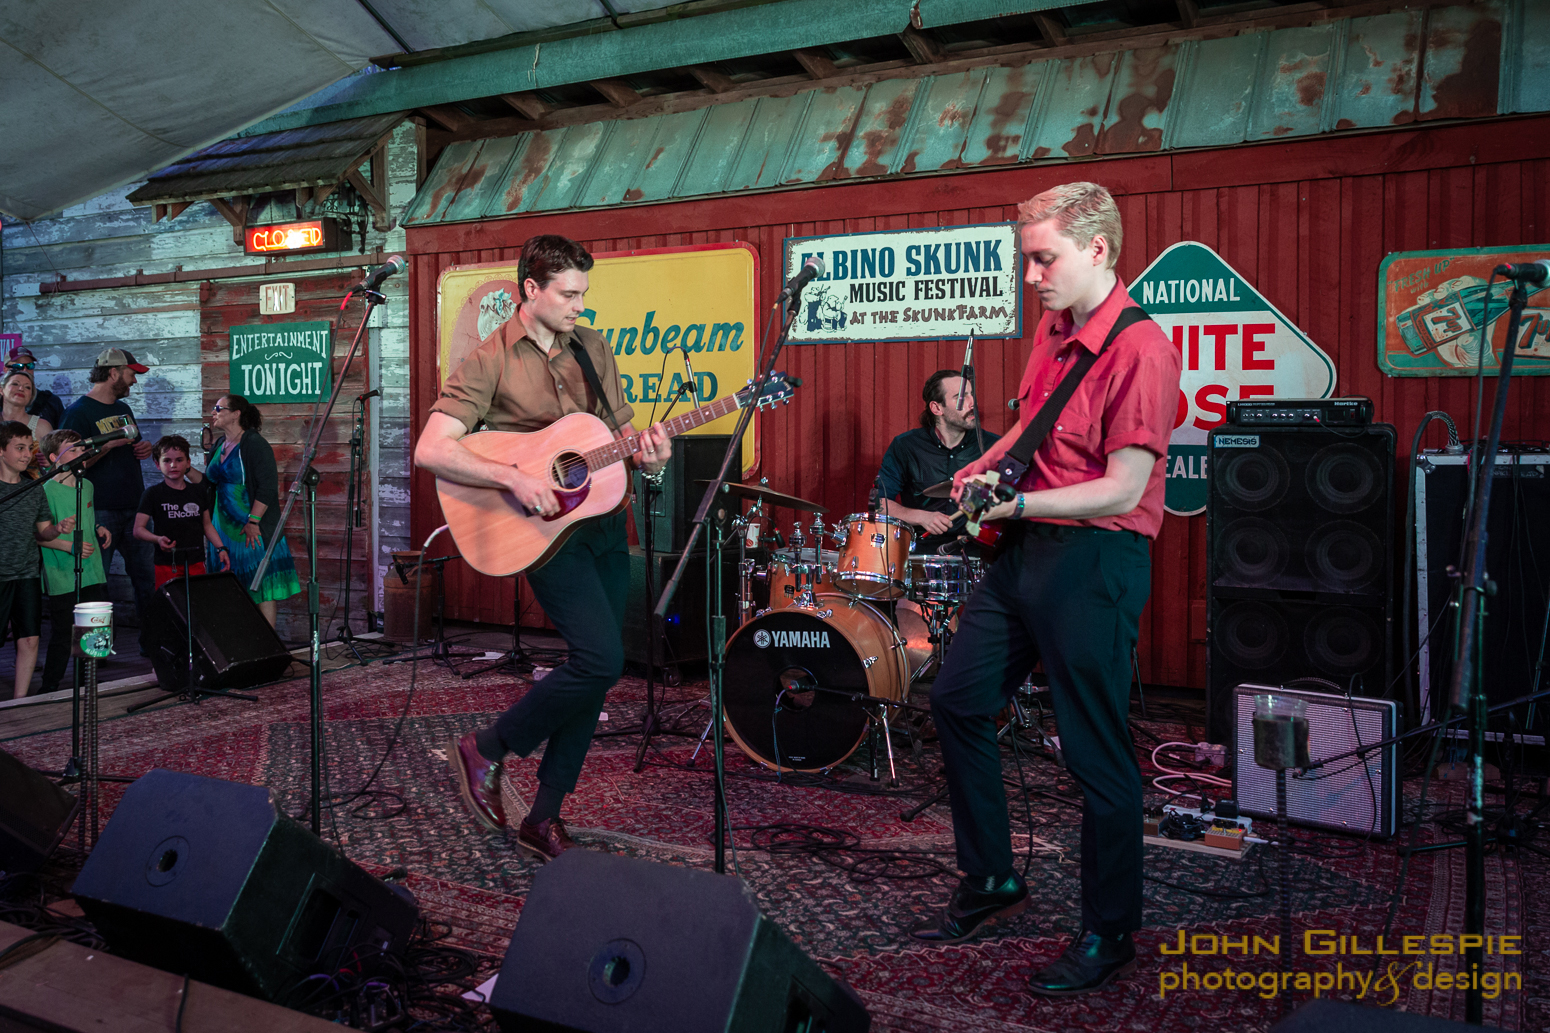 The Ruen Brothers perform at the Albino Skunk Music Festival. Photo: John Gillespie